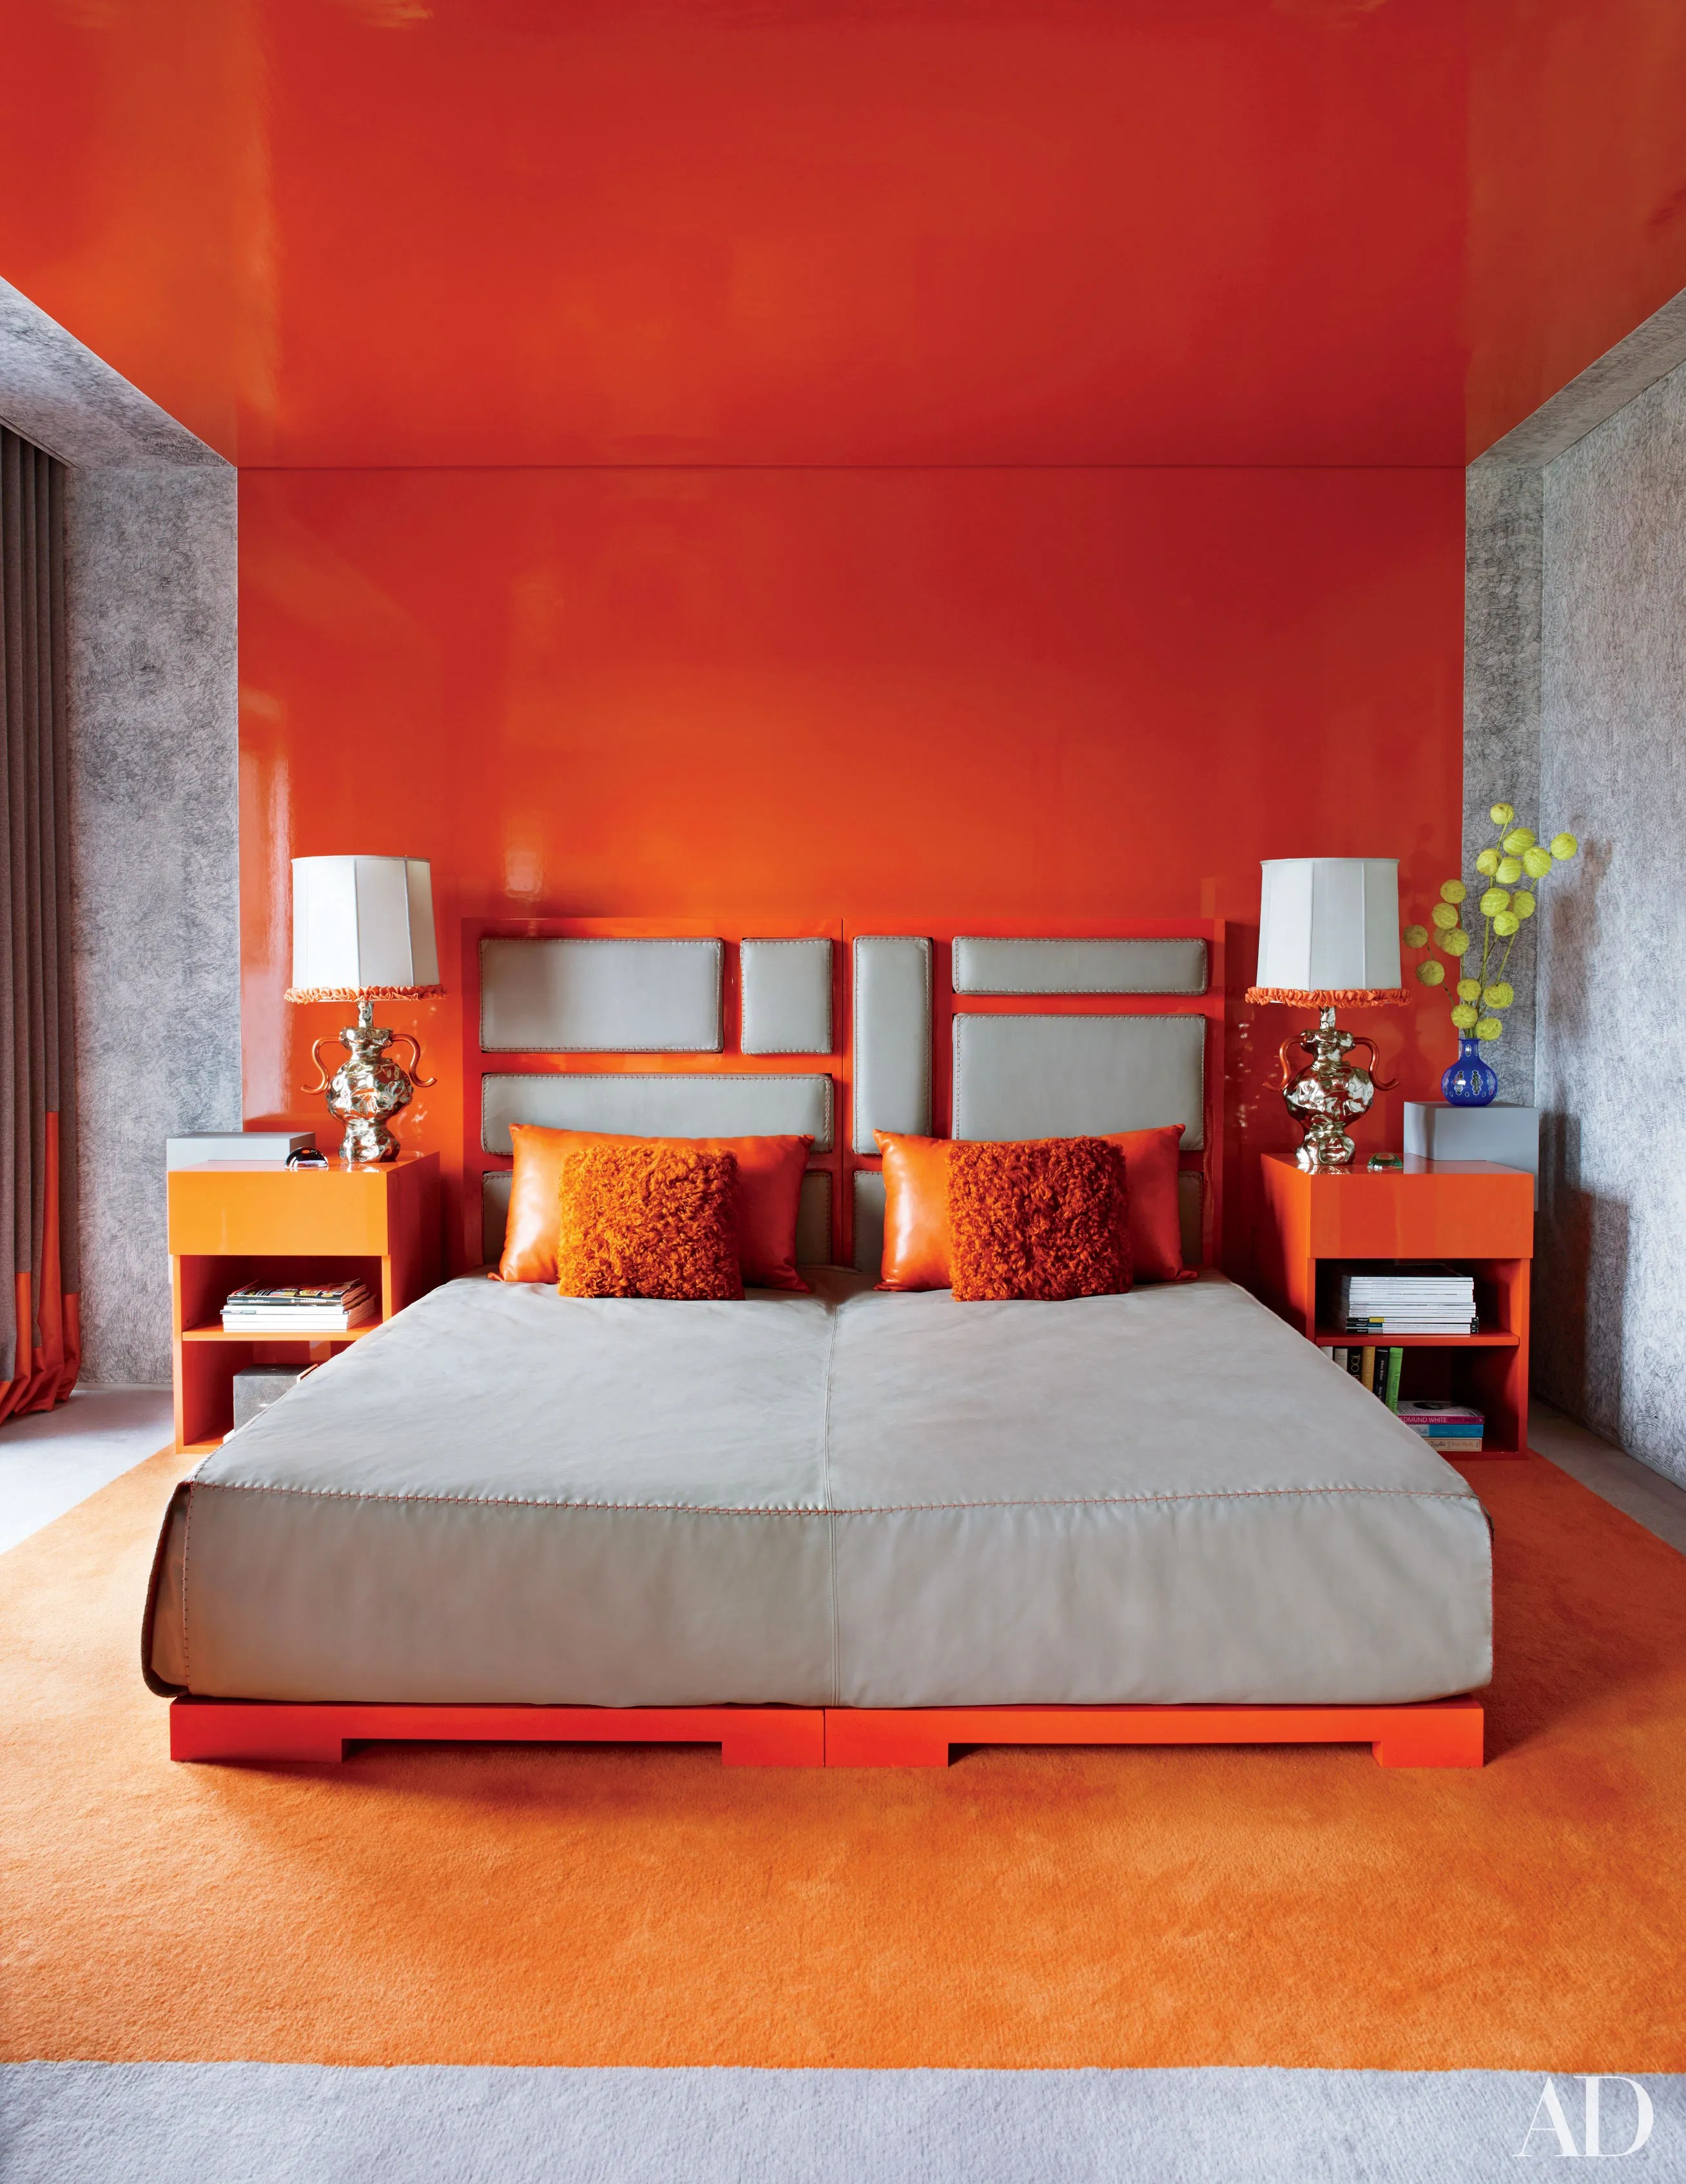 Unexpected Headboard Designs For Decor Risk Takers Architectural Digest